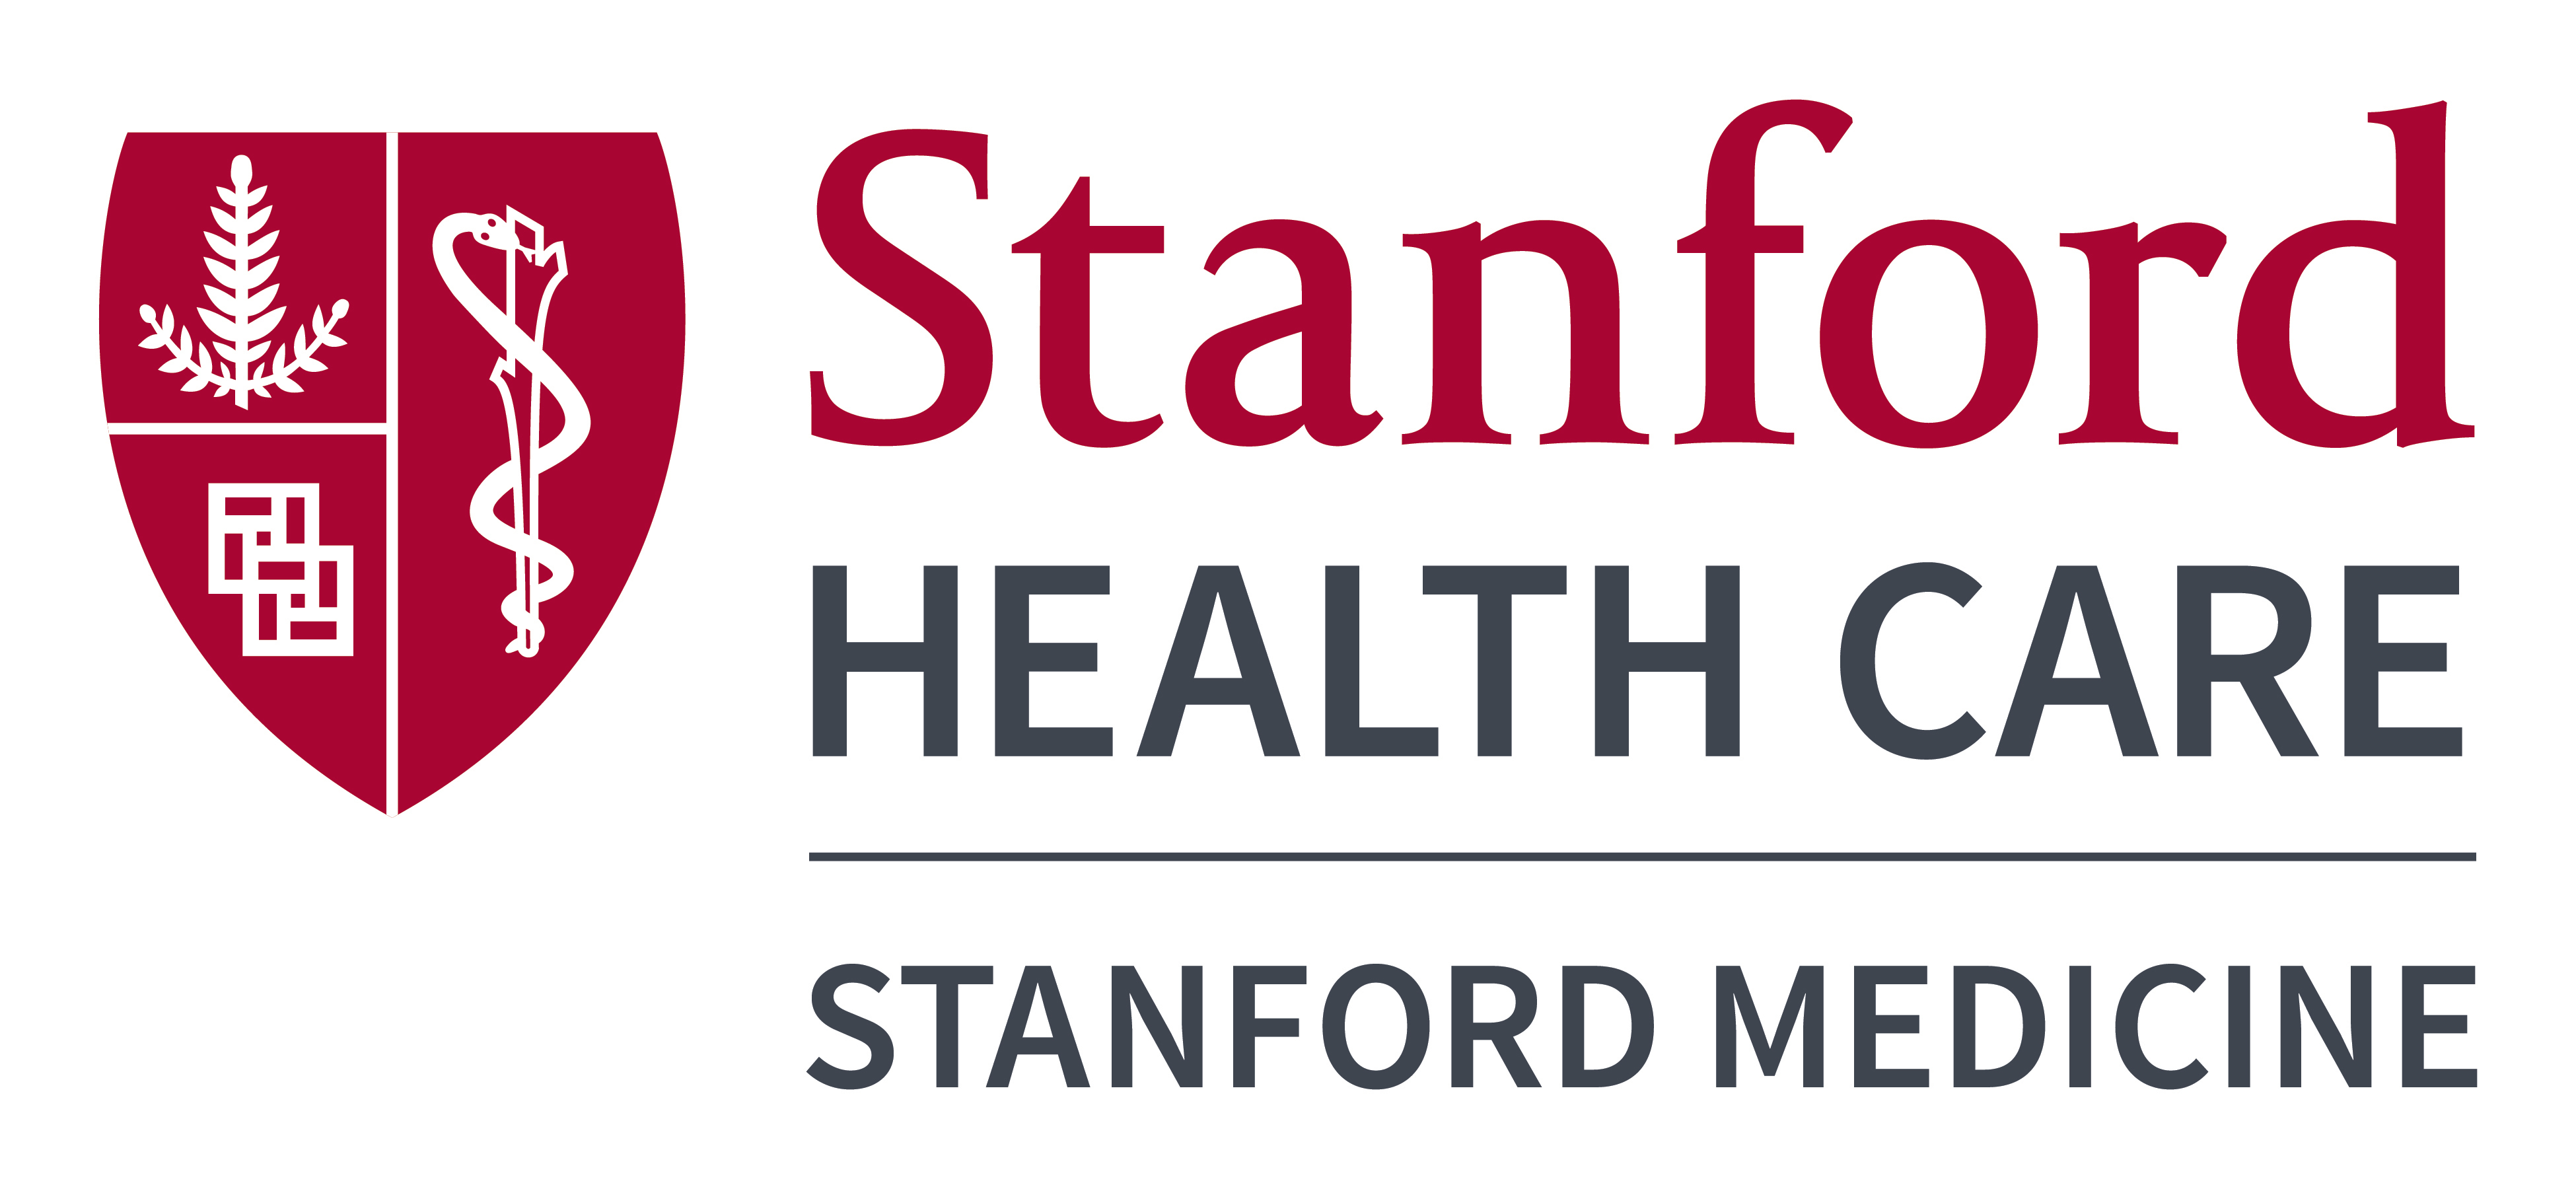 "{""zh-hans"":""斯坦福医院"",""en-us"":""Stanford Health Care""}"